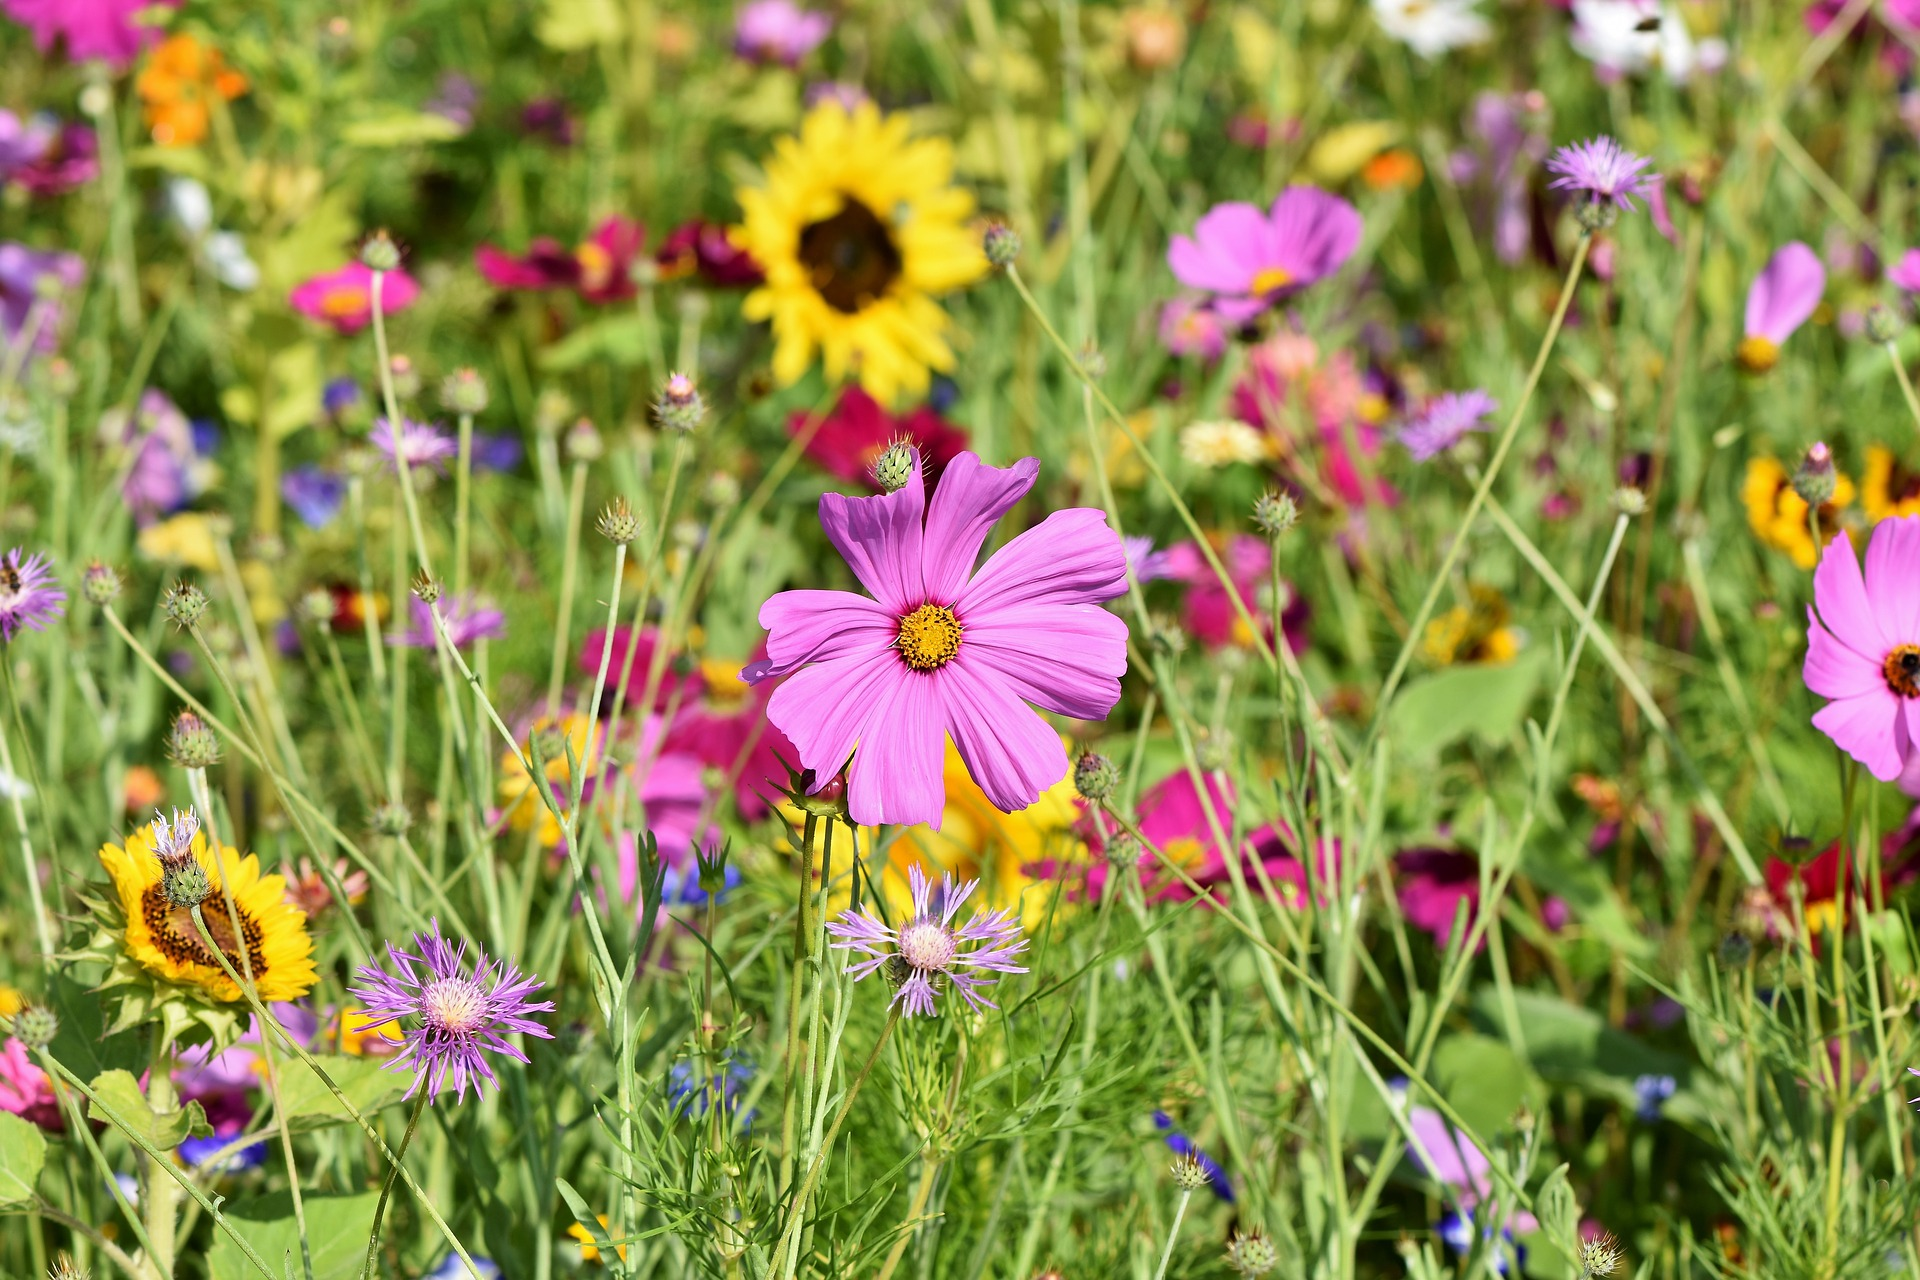 Flowers of many colors in a green field